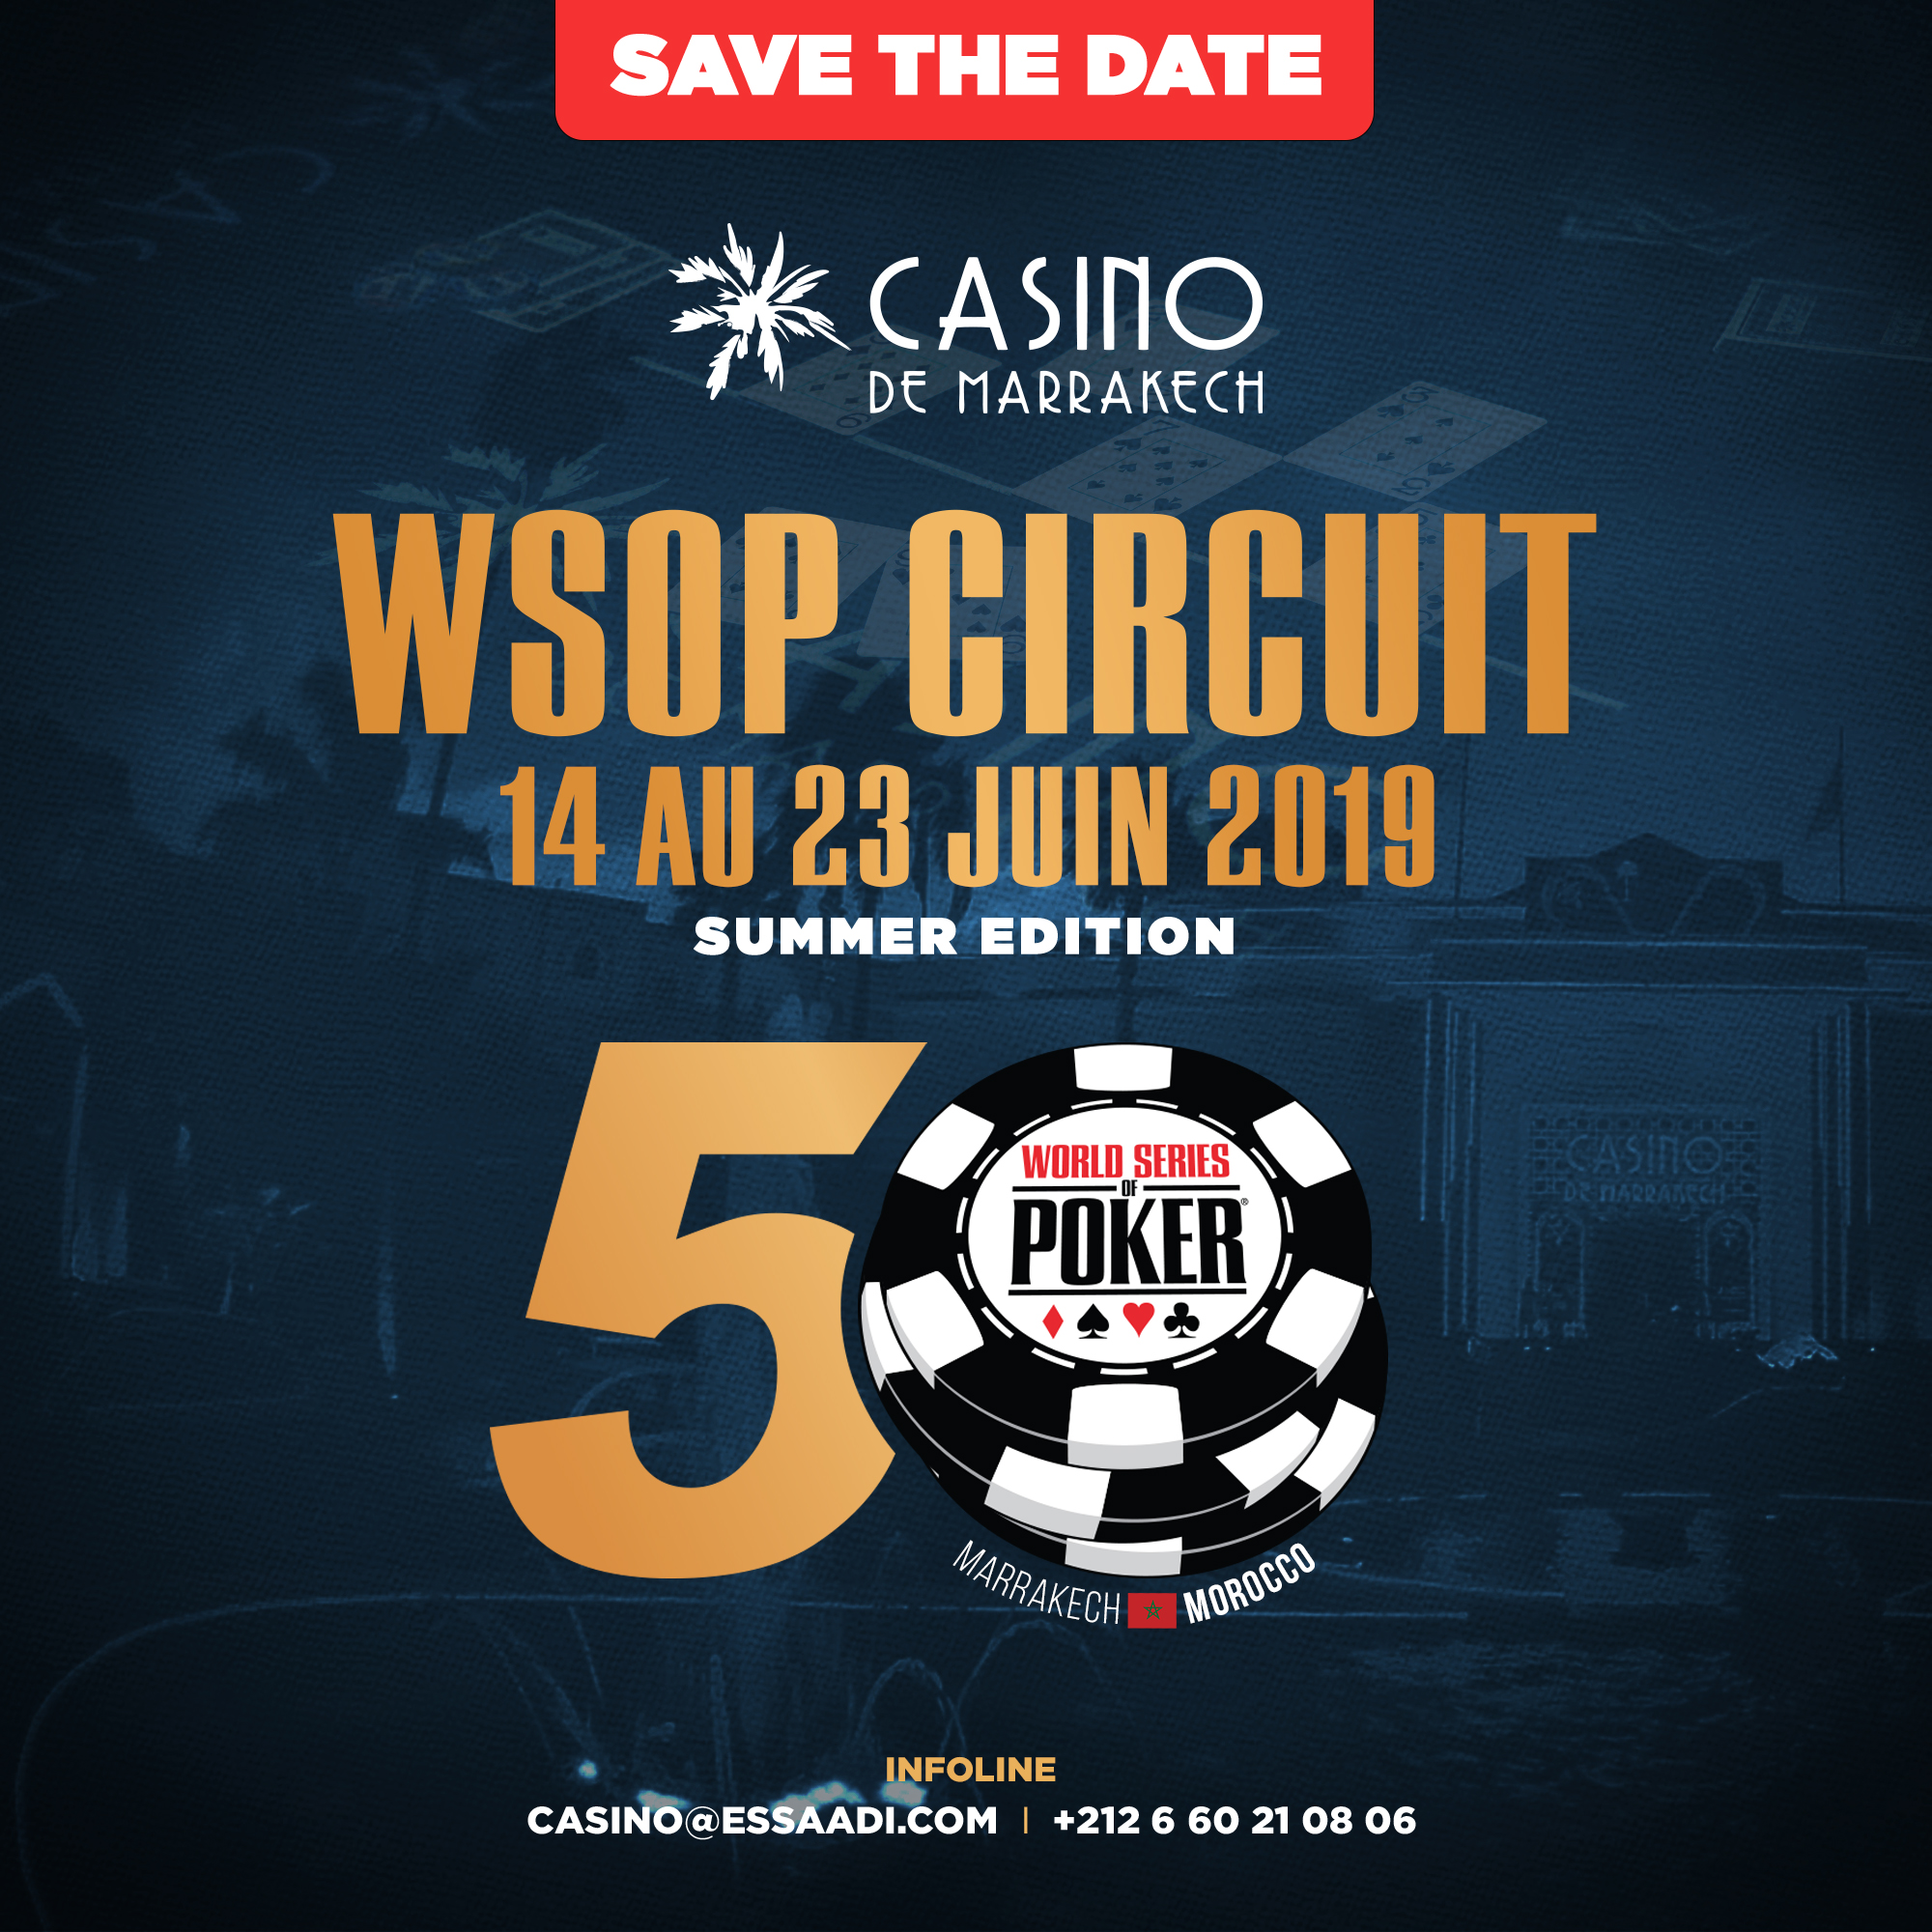 Les World Series of Poker reviennent à Marrakech du 14 au 23 juin 2019.